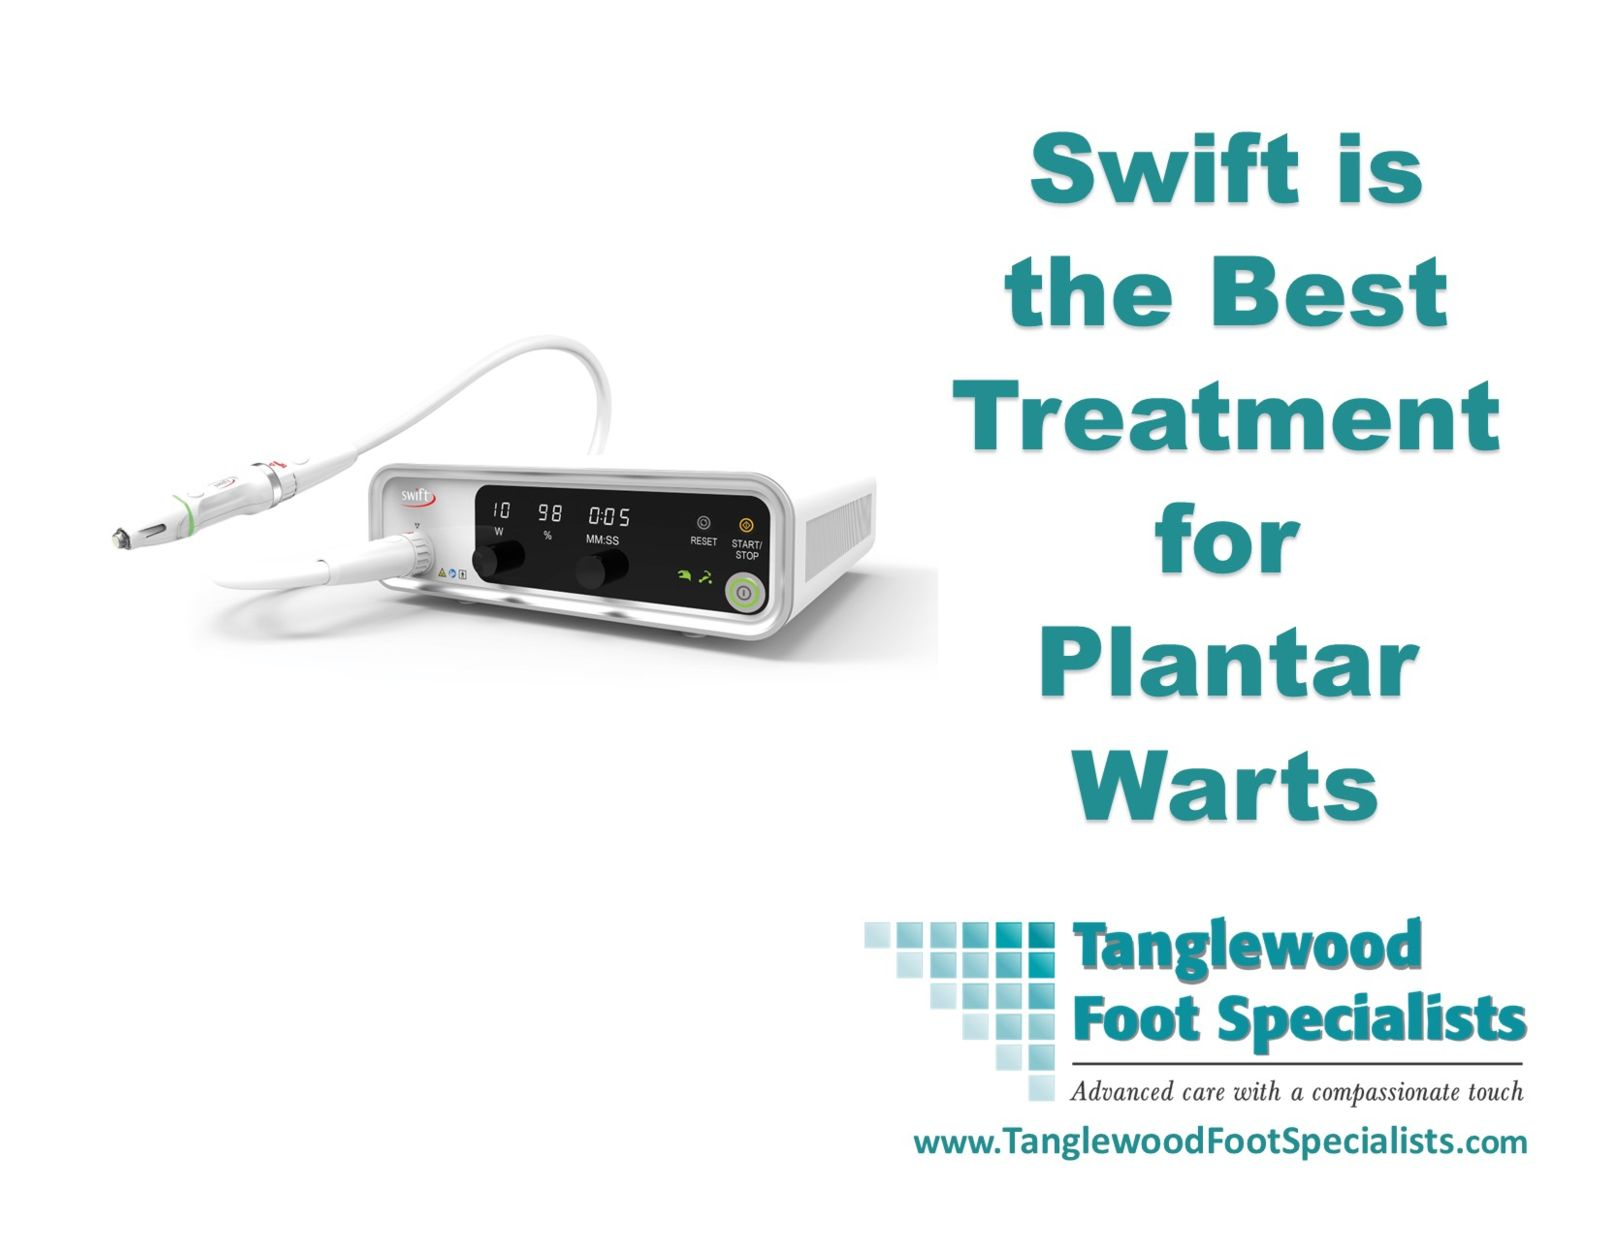 Houston podiatrist recommends Swift treatment for plantar warts